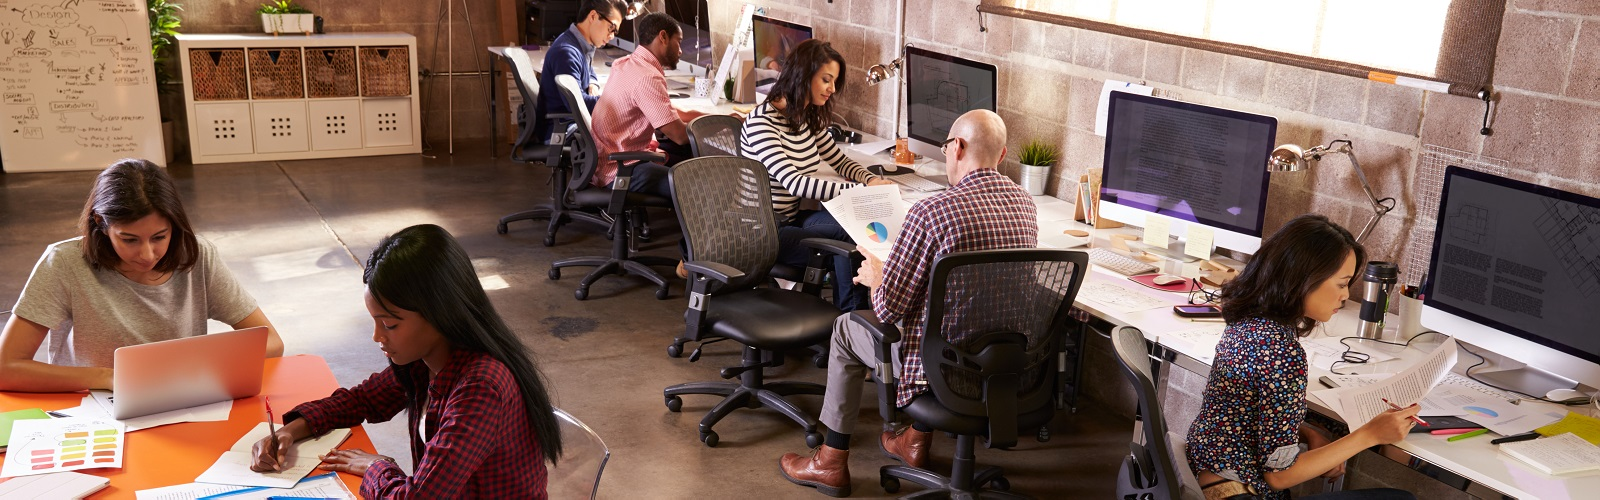 Image: a group of people working in an office